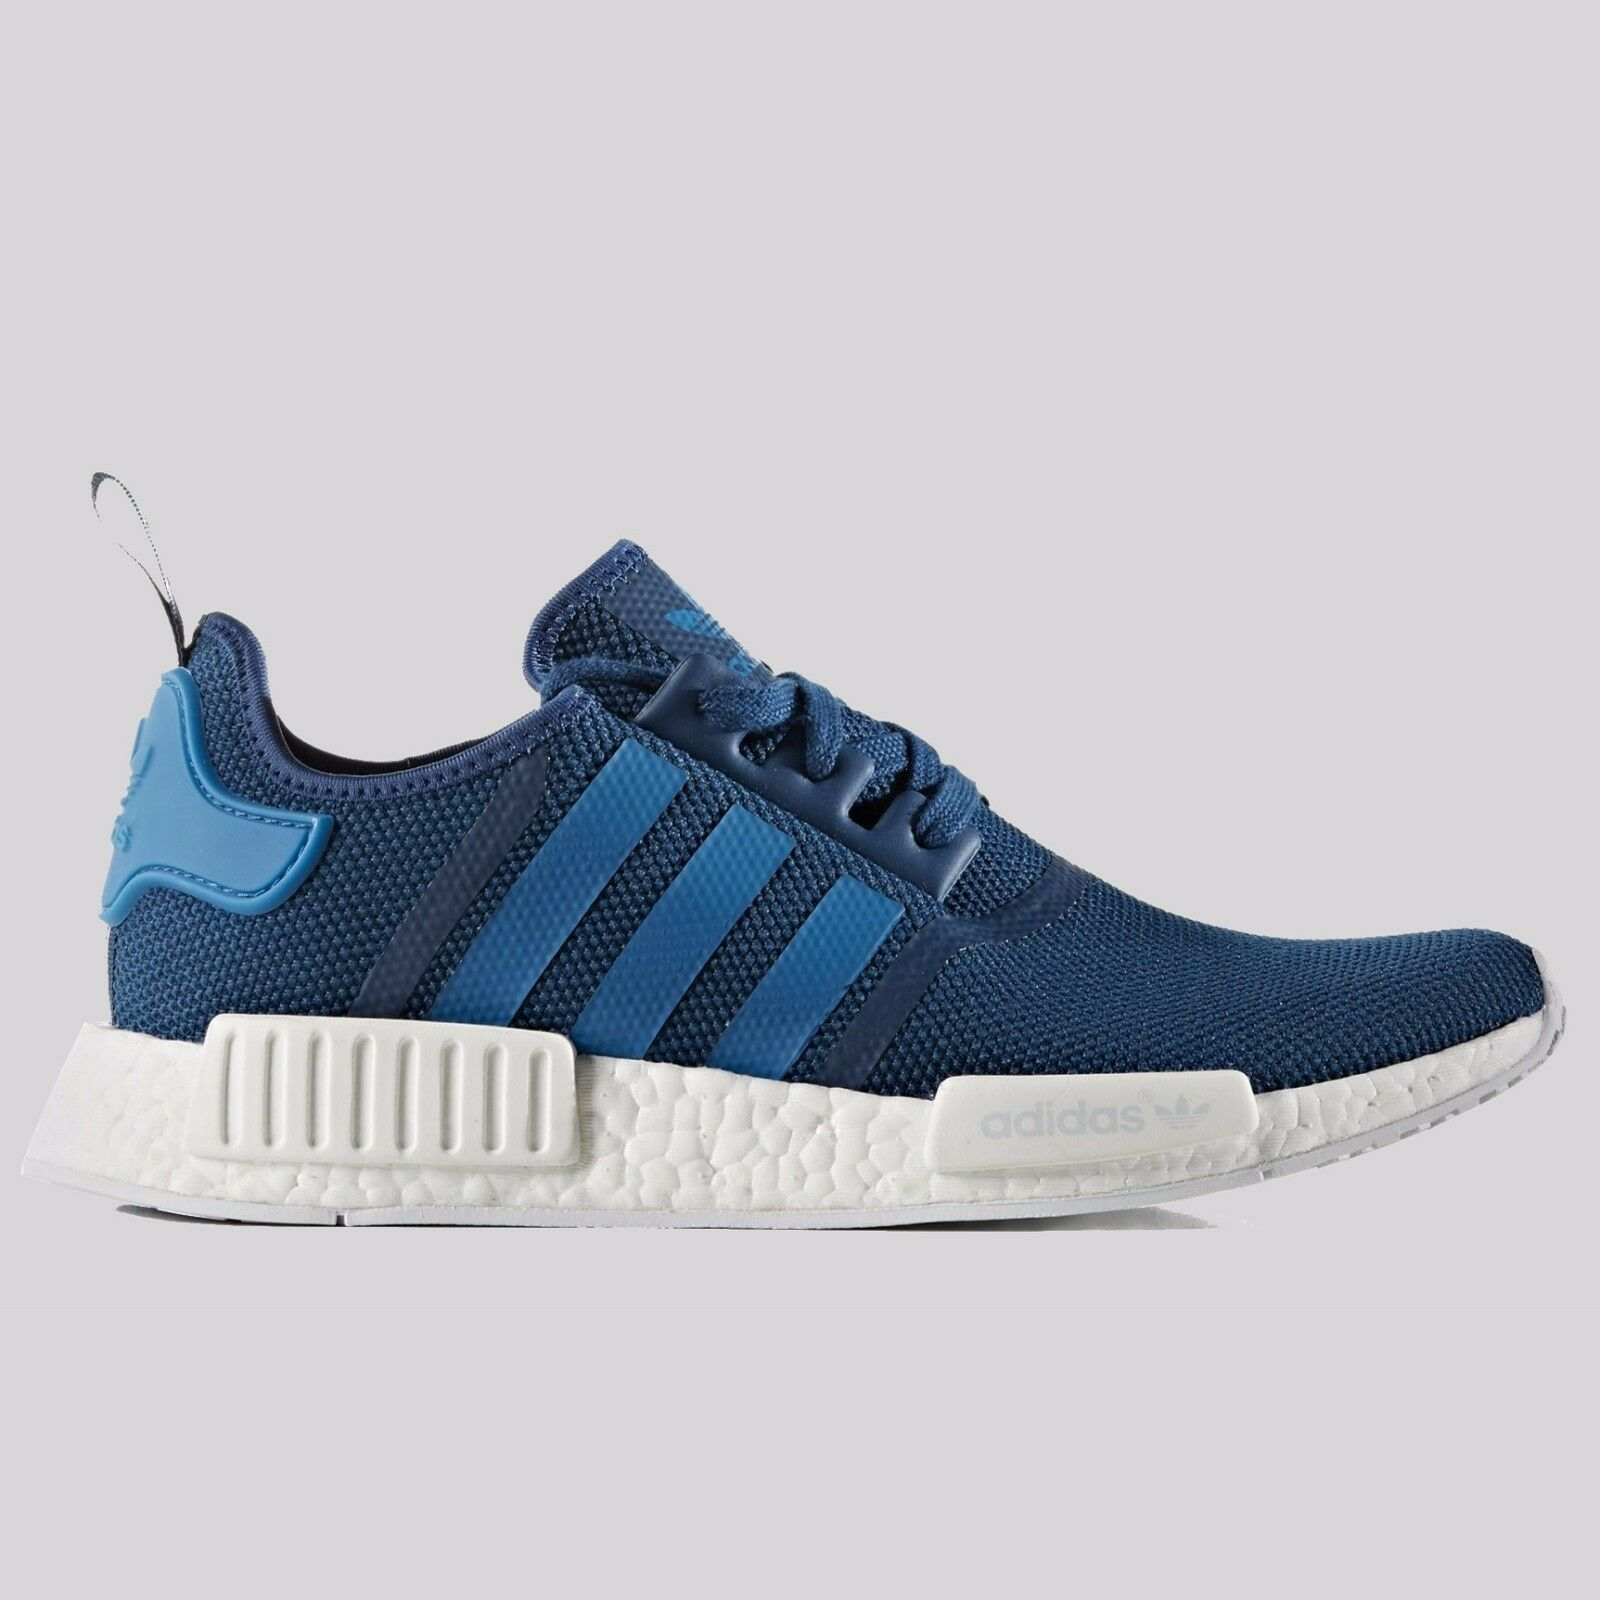 Adidas NMD R1 Steel Blue White Size 11.5. S31502 ultra boost pk yeezy